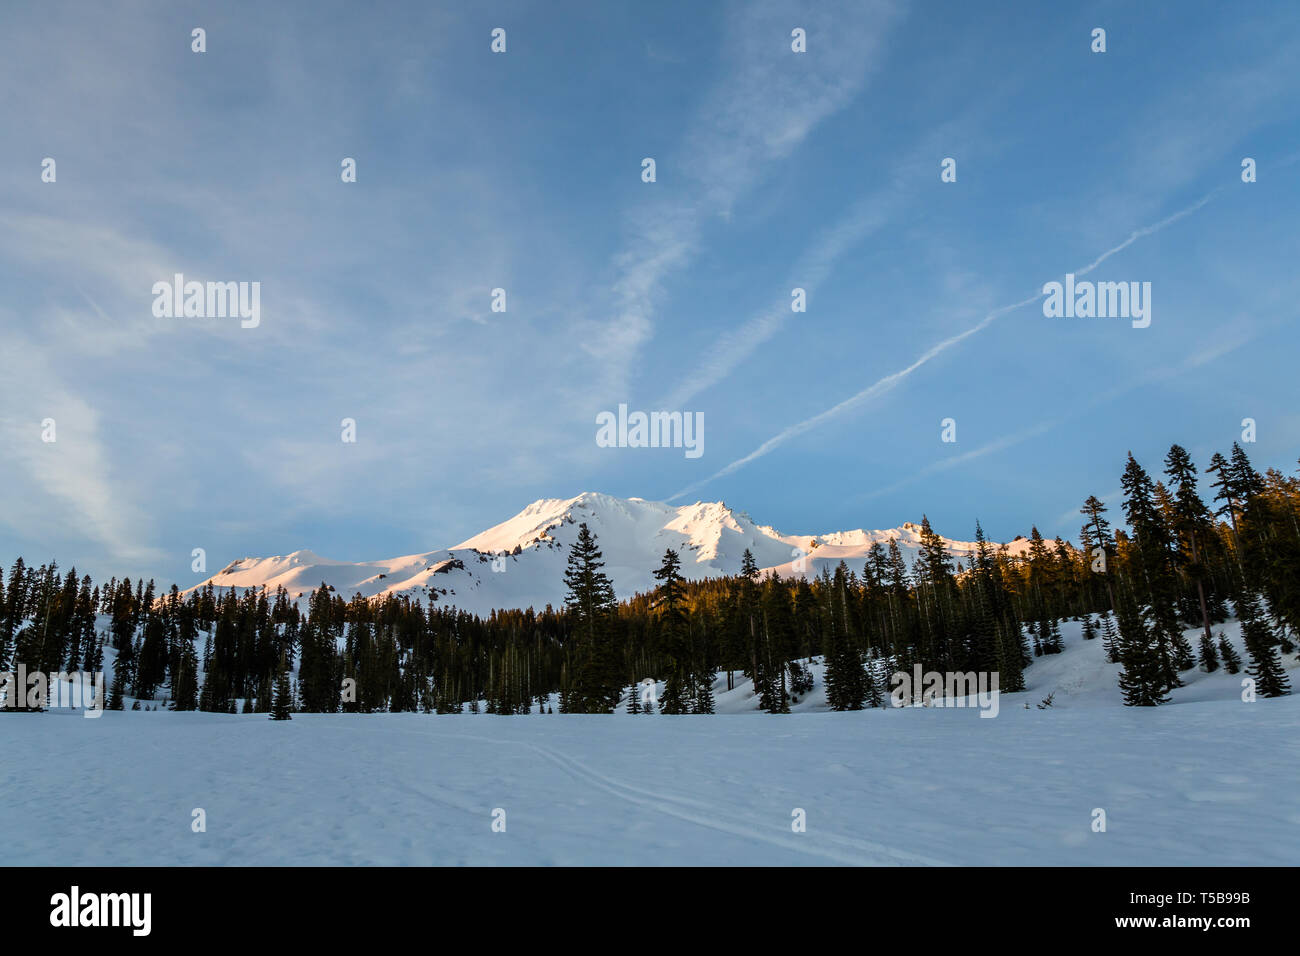 Streaks of clouds pass over Mount Shasta just before sunset as the last light illuminates the volcano in California. - Stock Image